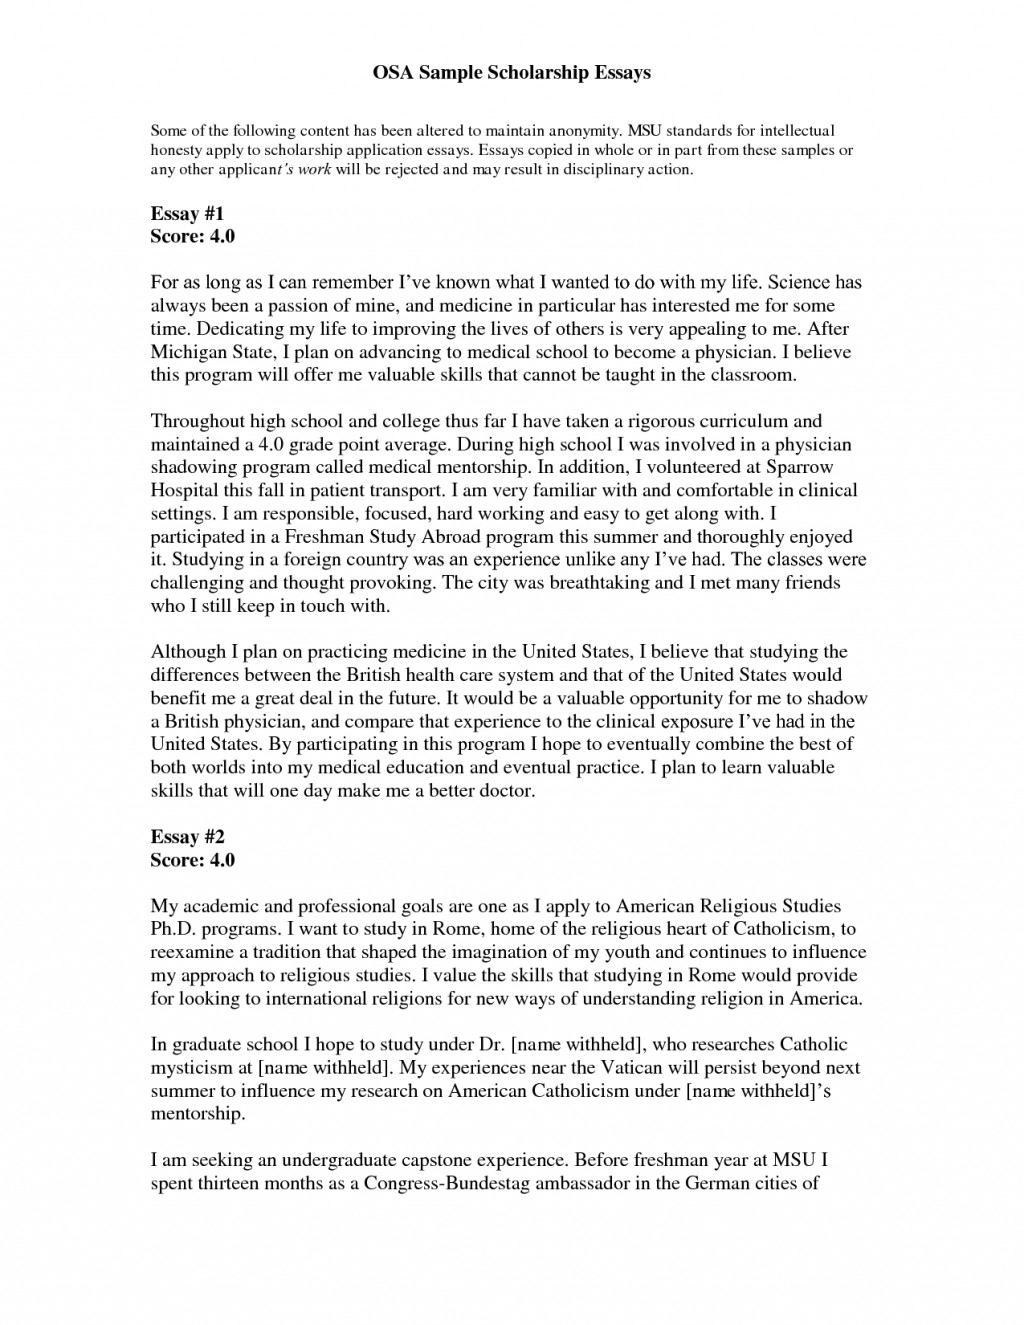 002 Write My Essay Online Breathtaking For Me Free Large